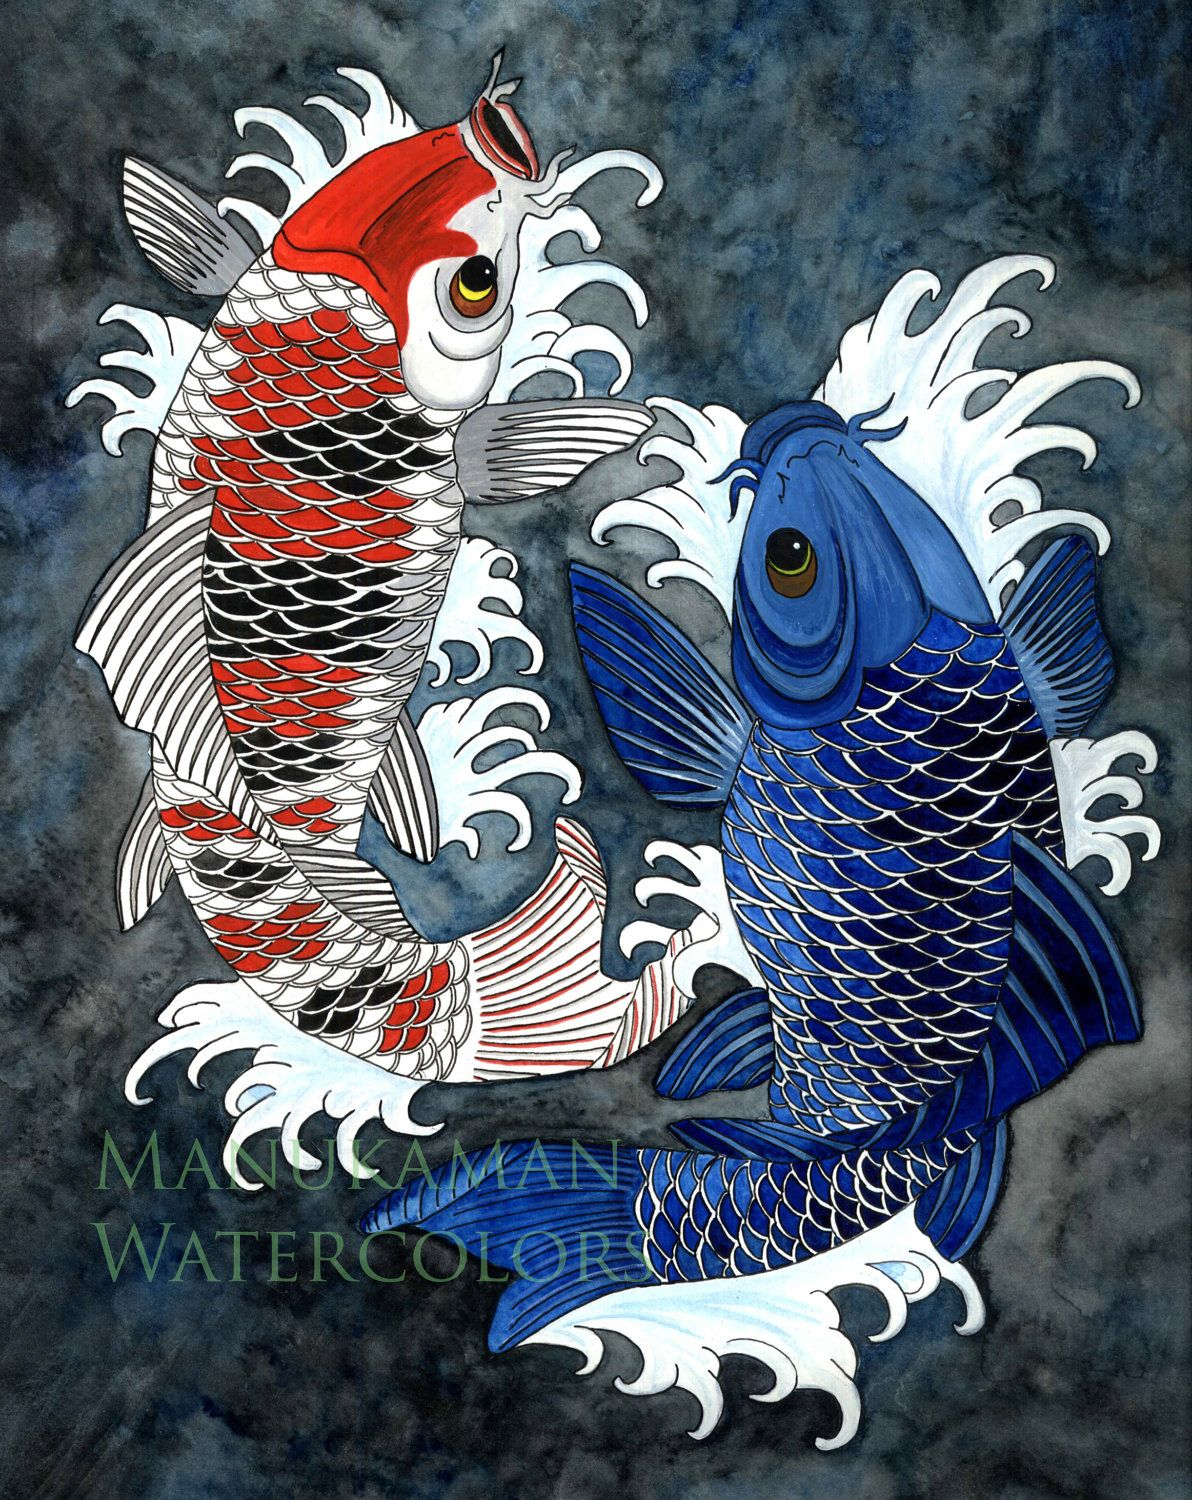 45 Traditional Japanese Koi Fish Tattoo Meaning Designs: Koi Fish Print Of A Japanese Styled Watercolor By Damon